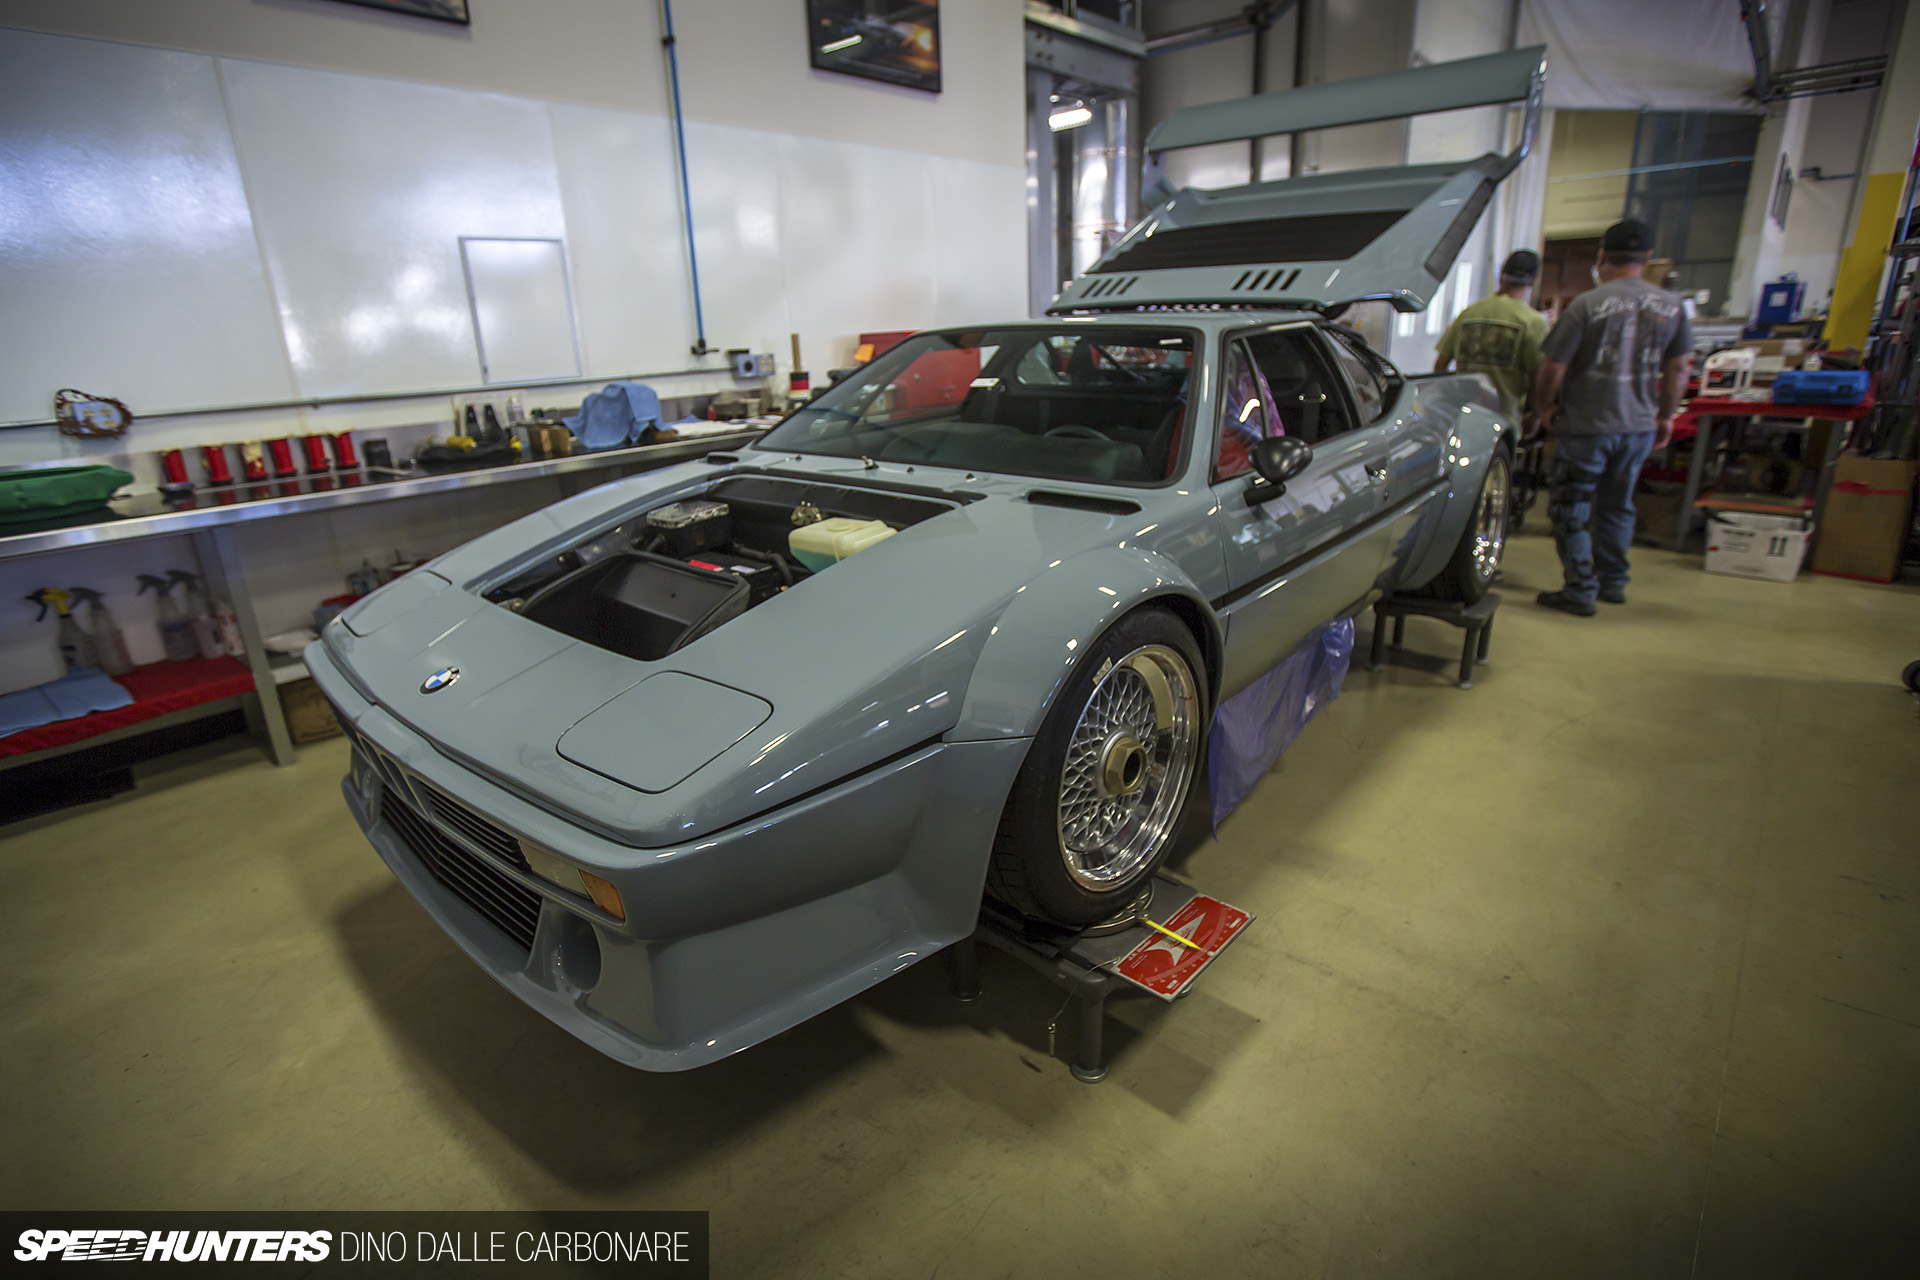 The Street Legal Canepa M1 Procar